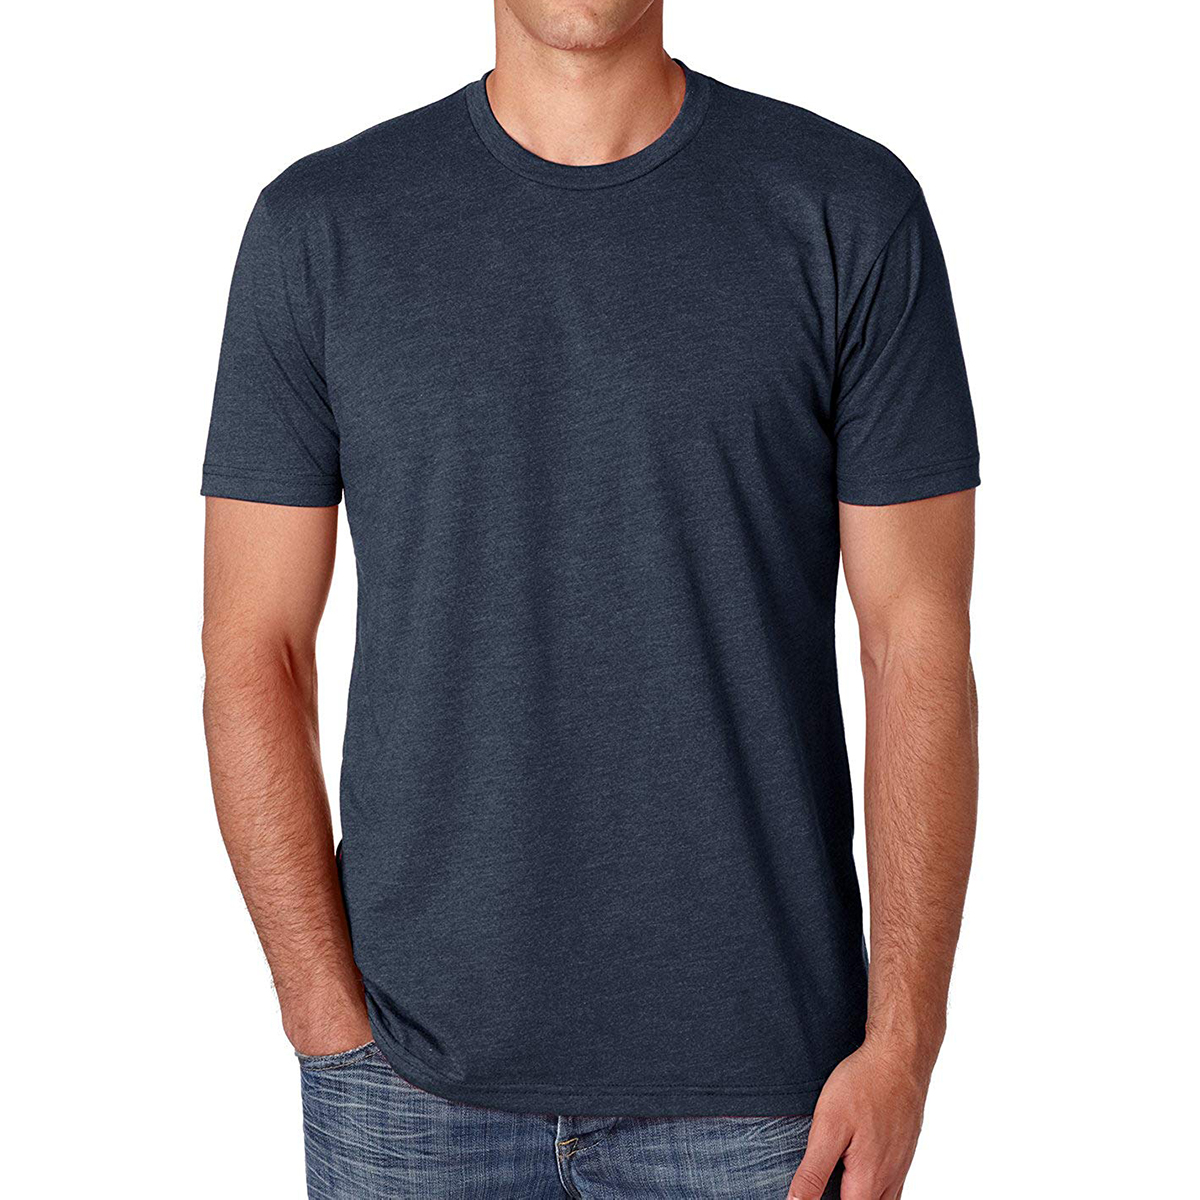 The Super Plain T-Shirt: Next Level Men's T-Shirt